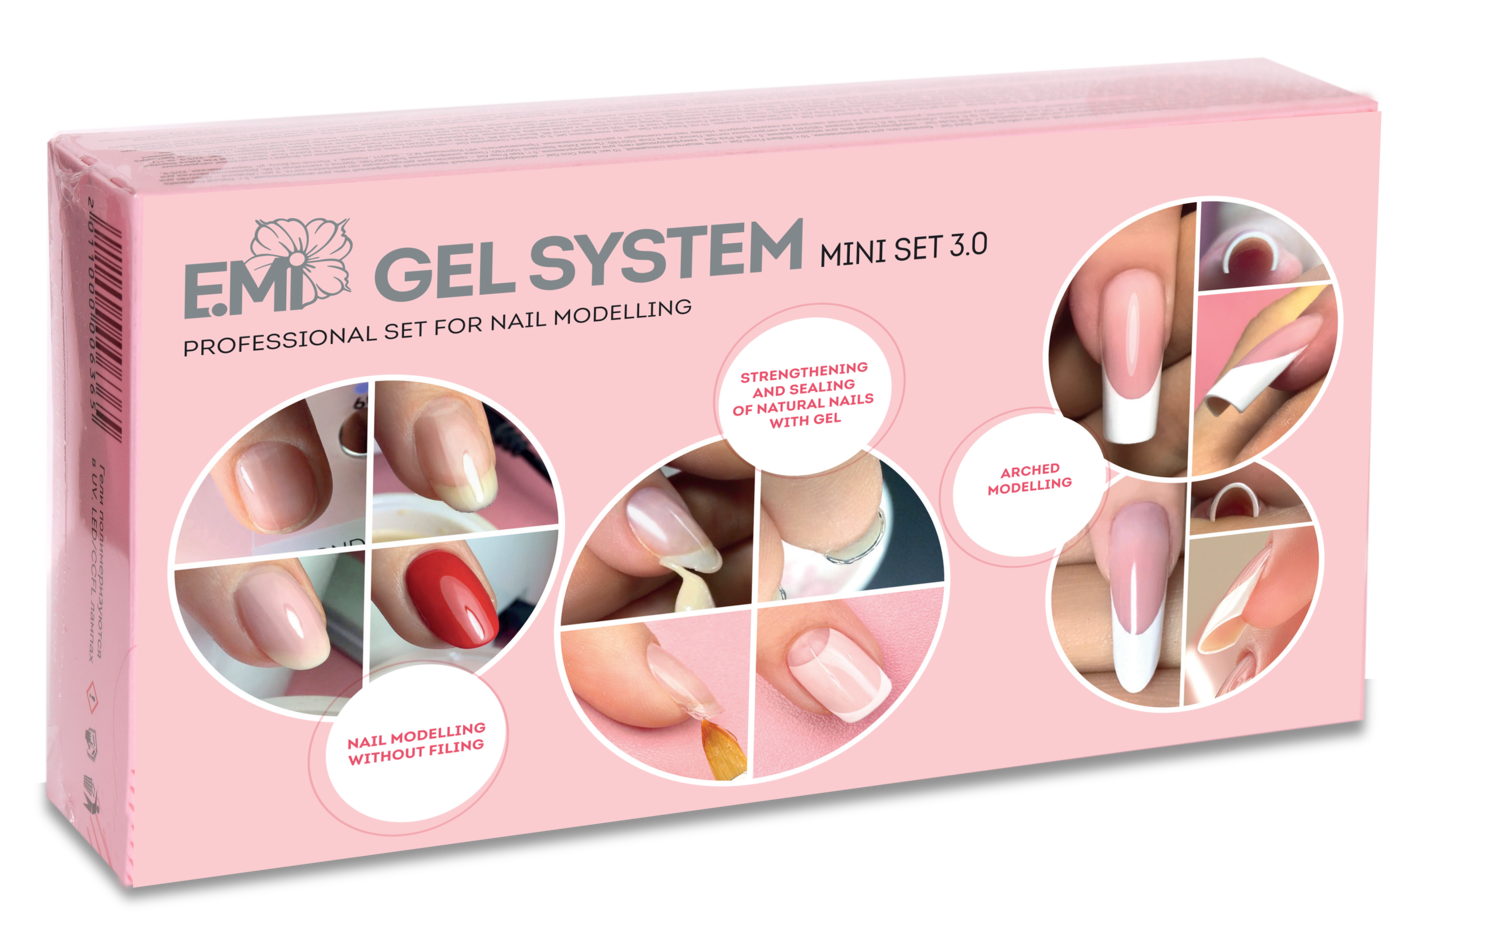 Mini Set E.Mi Gel System 3.0